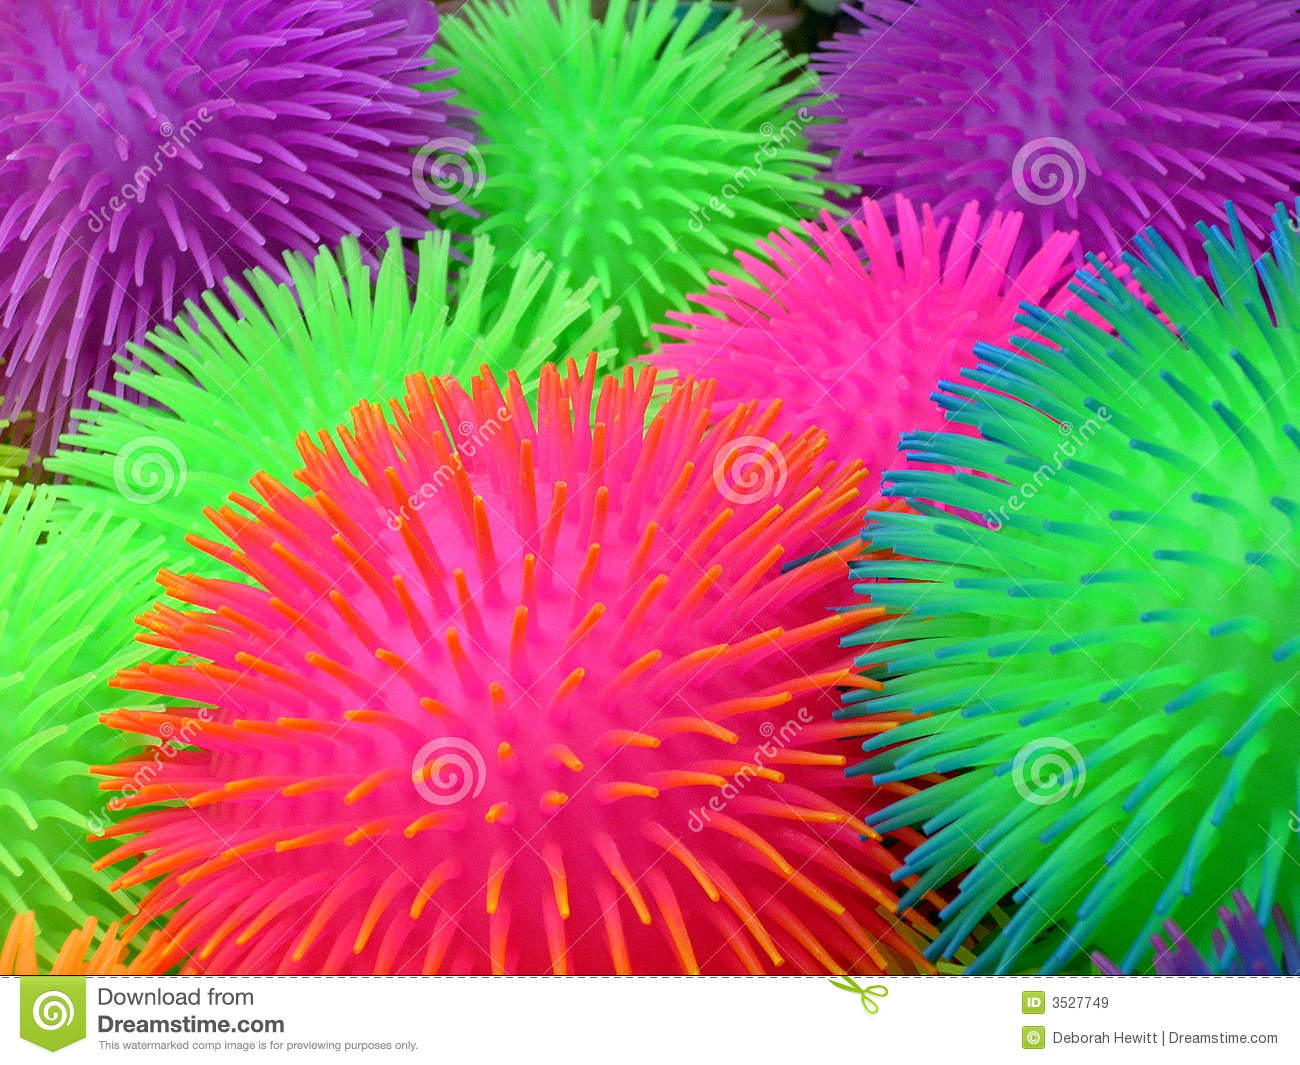 Purple Squishy Ball : Squishy Balls With Spines Royalty Free Stock Images - Image: 3527749